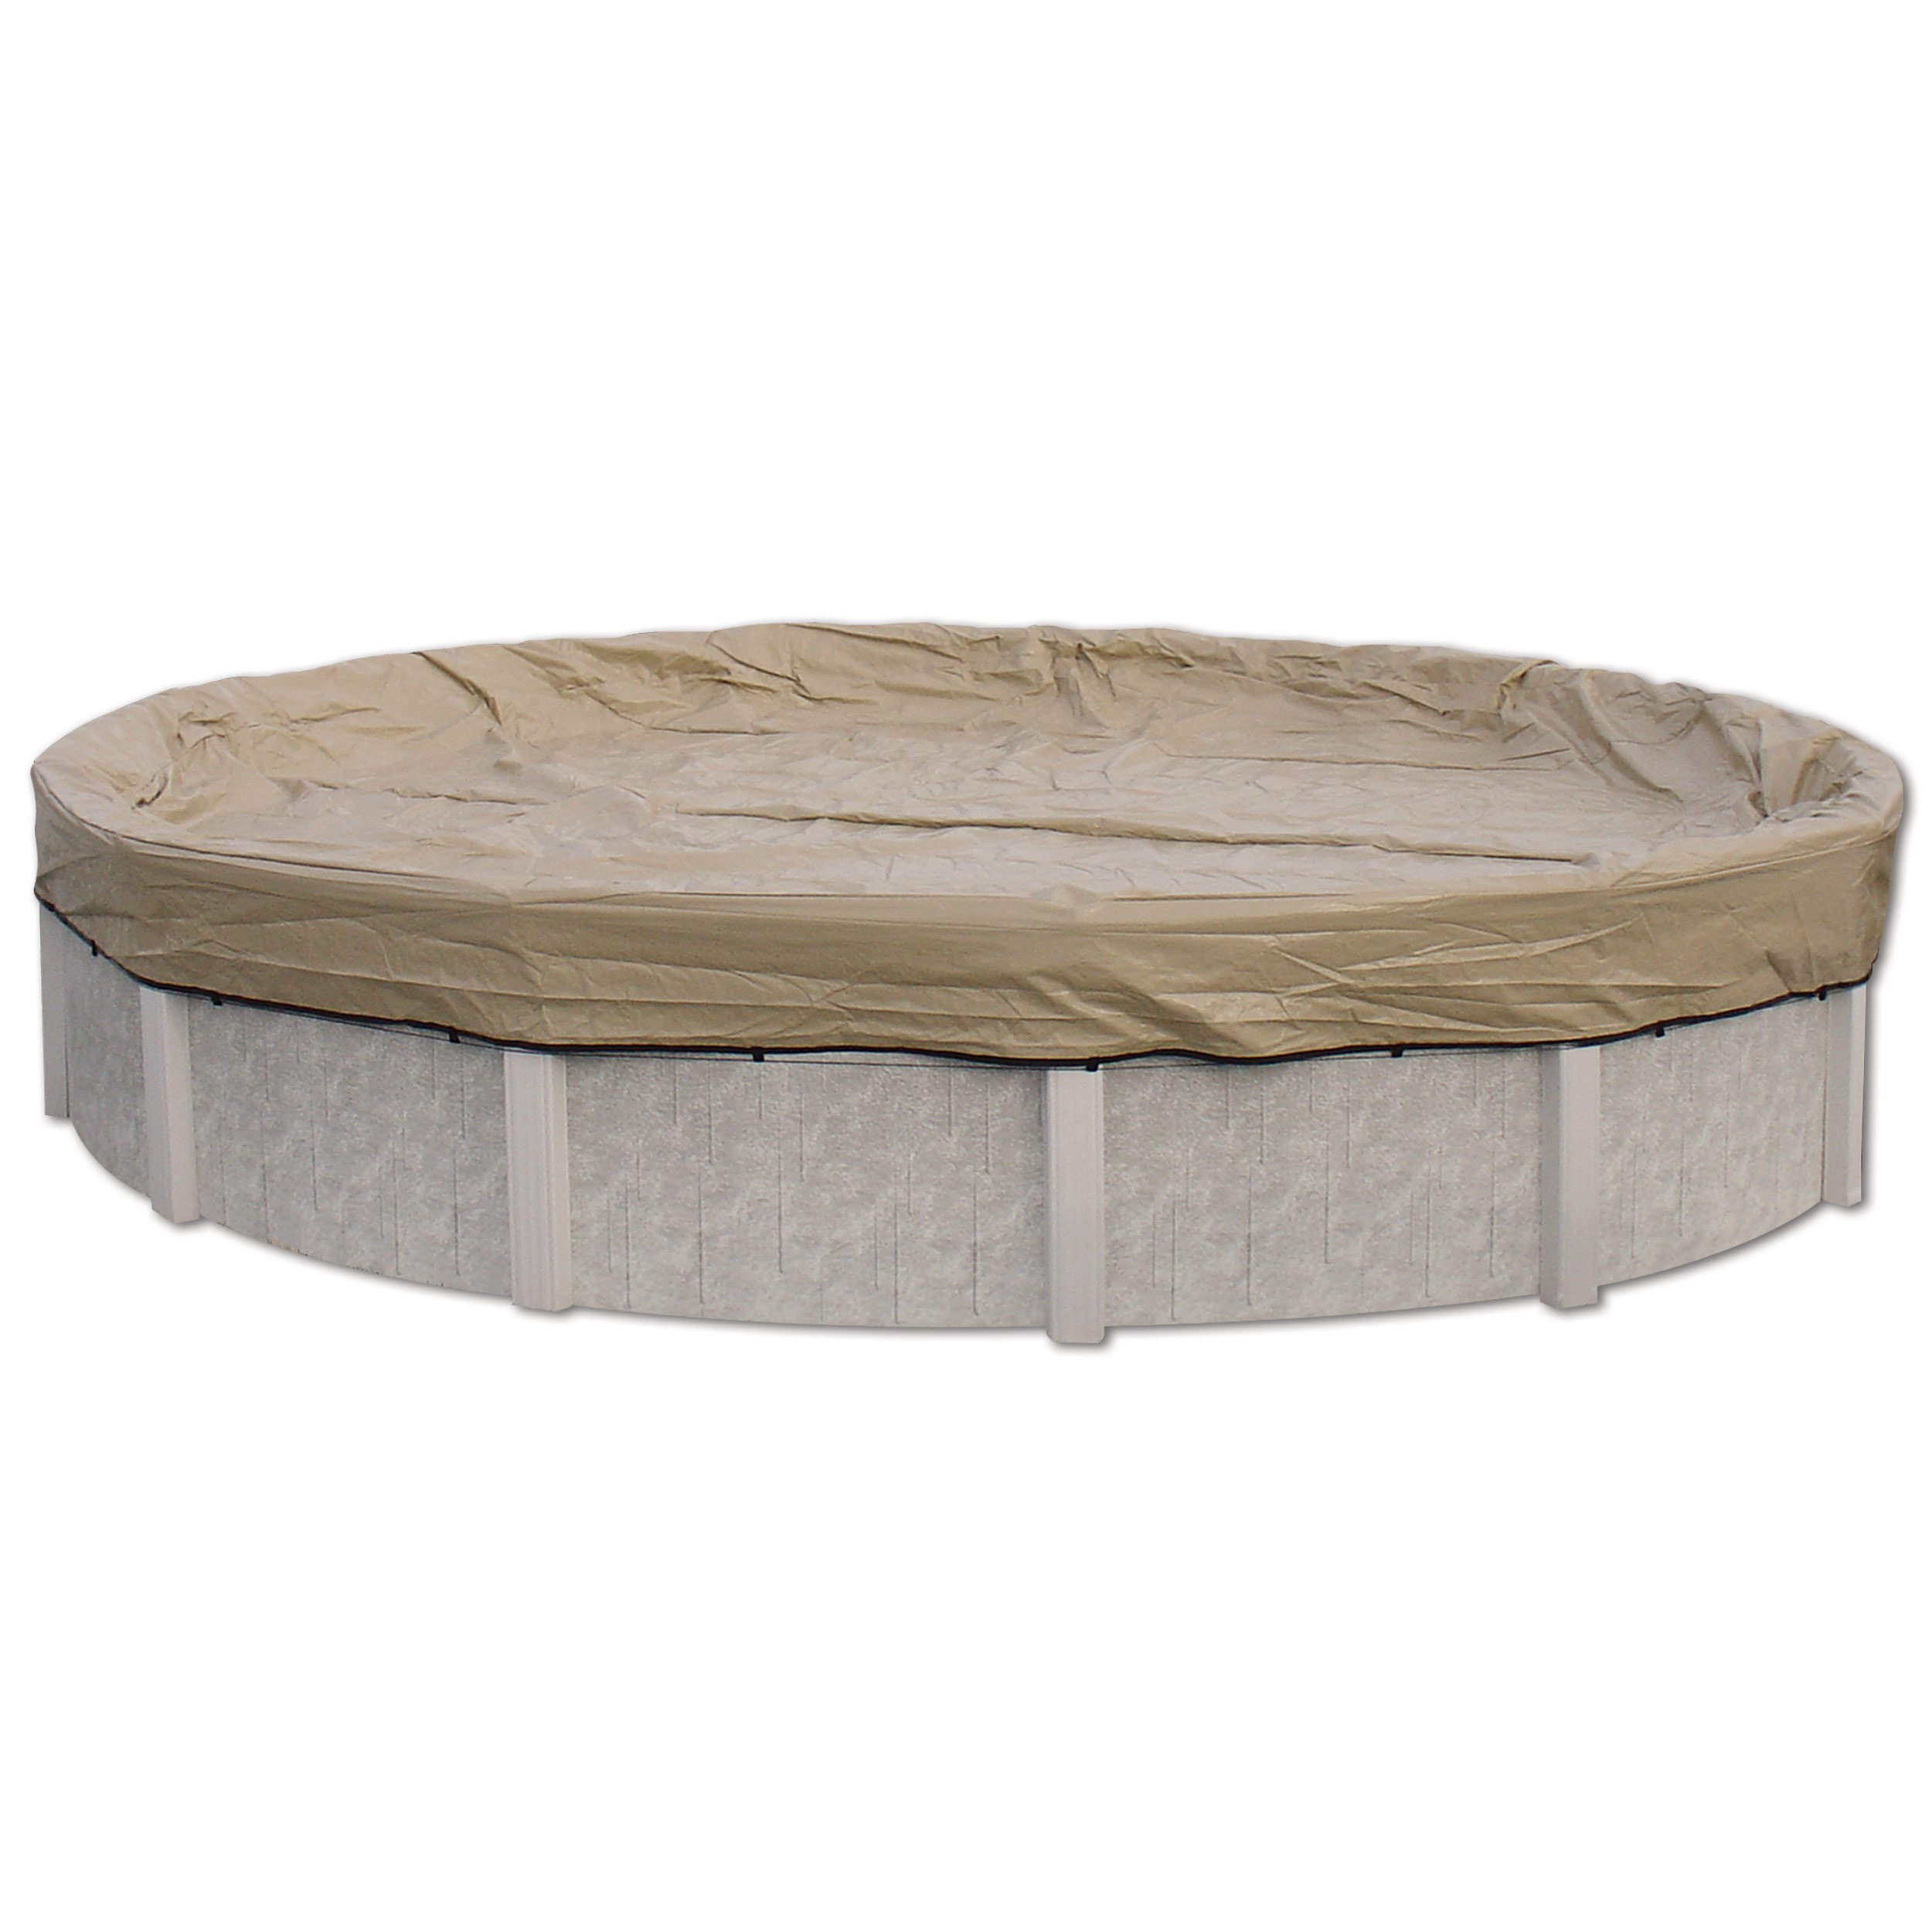 20-Year 18 ft Round Pool Winter Cover